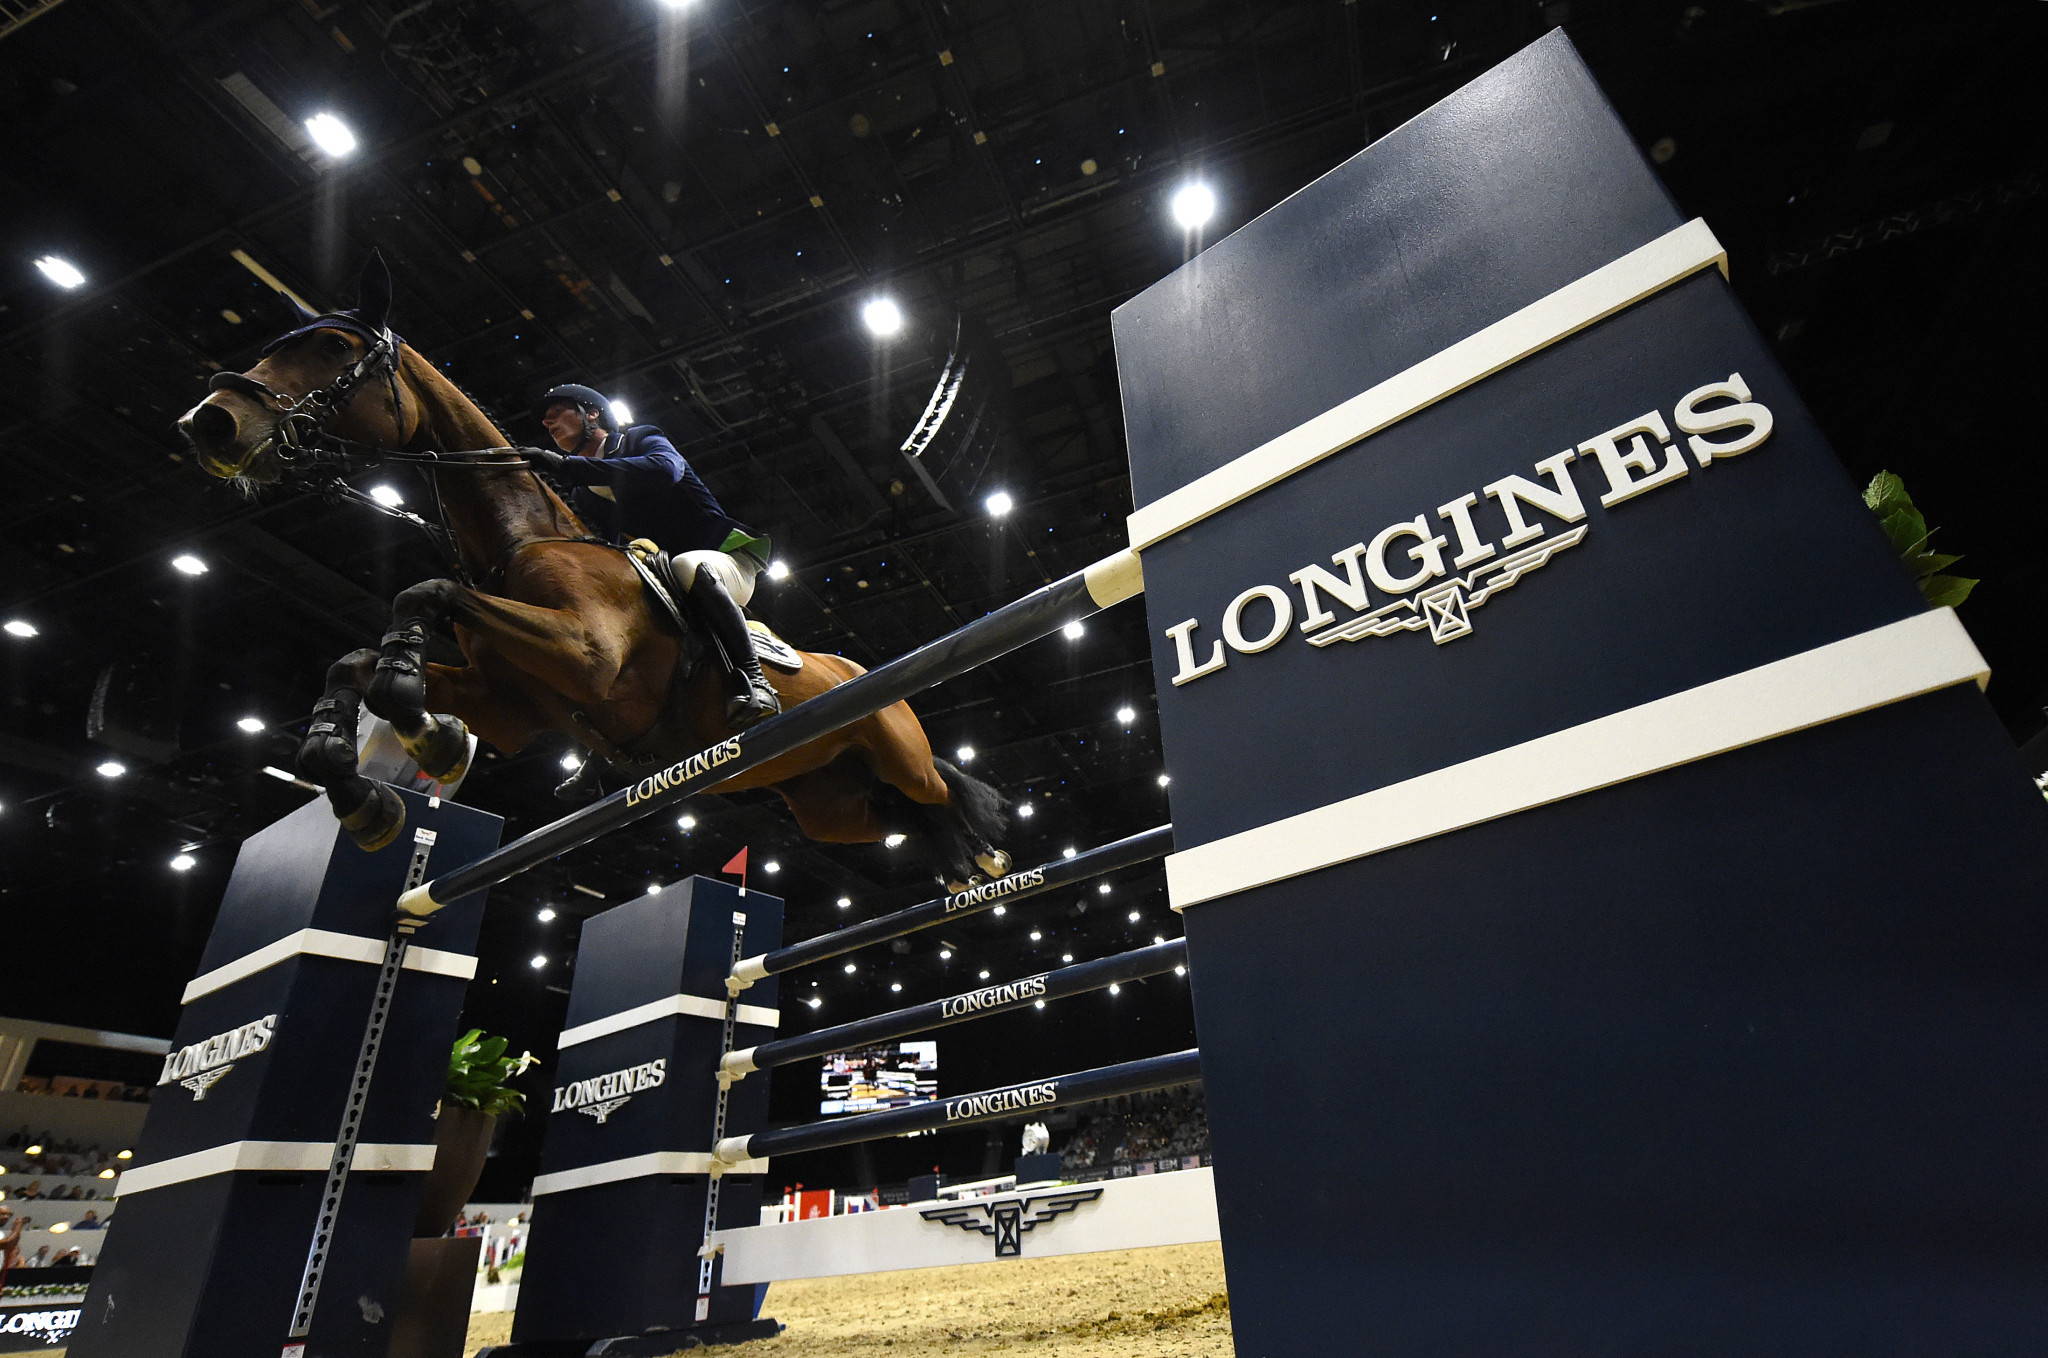 Germany's Deusser triumphs at FEI Jumping World Cup event in Bordeaux